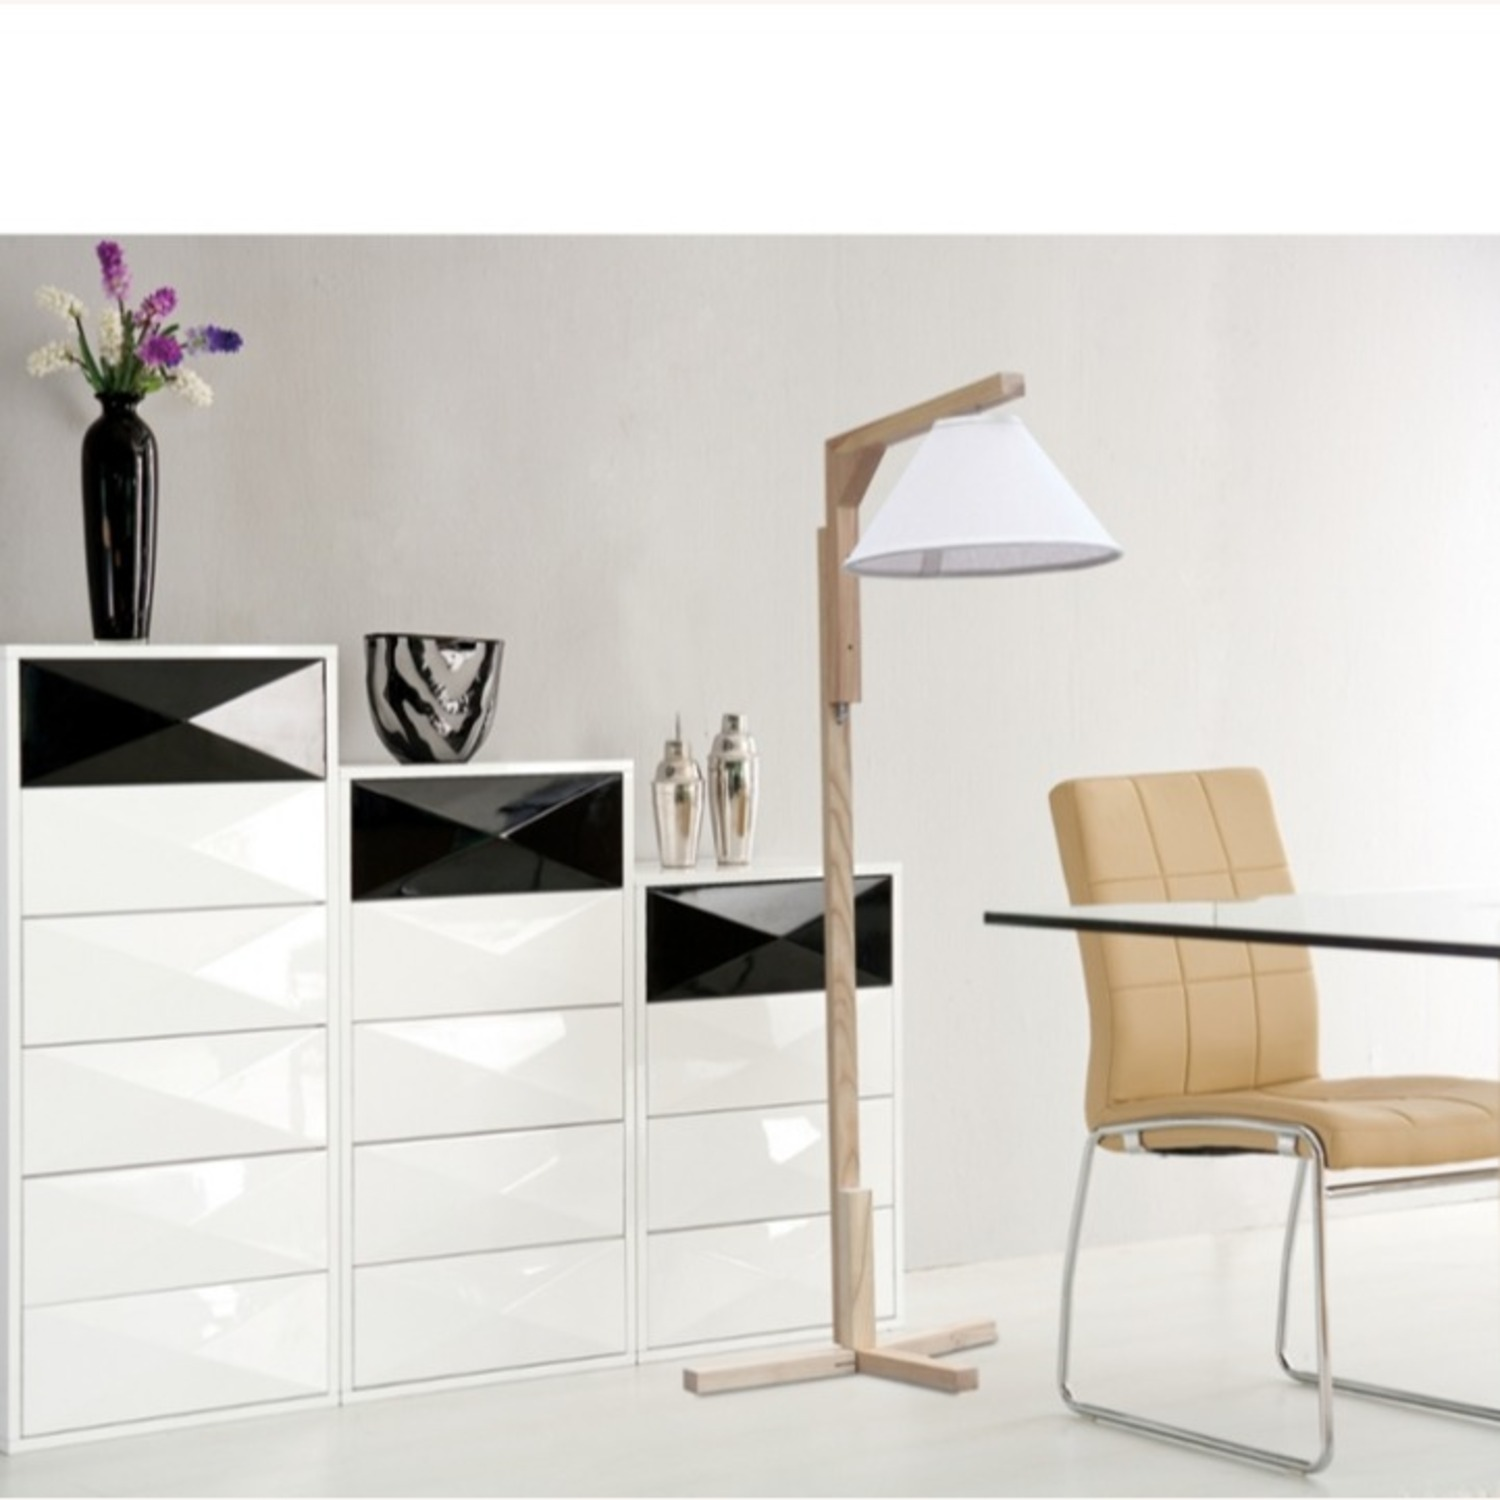 Spiral Floor Lamp In Natural Wood Finish - image-4